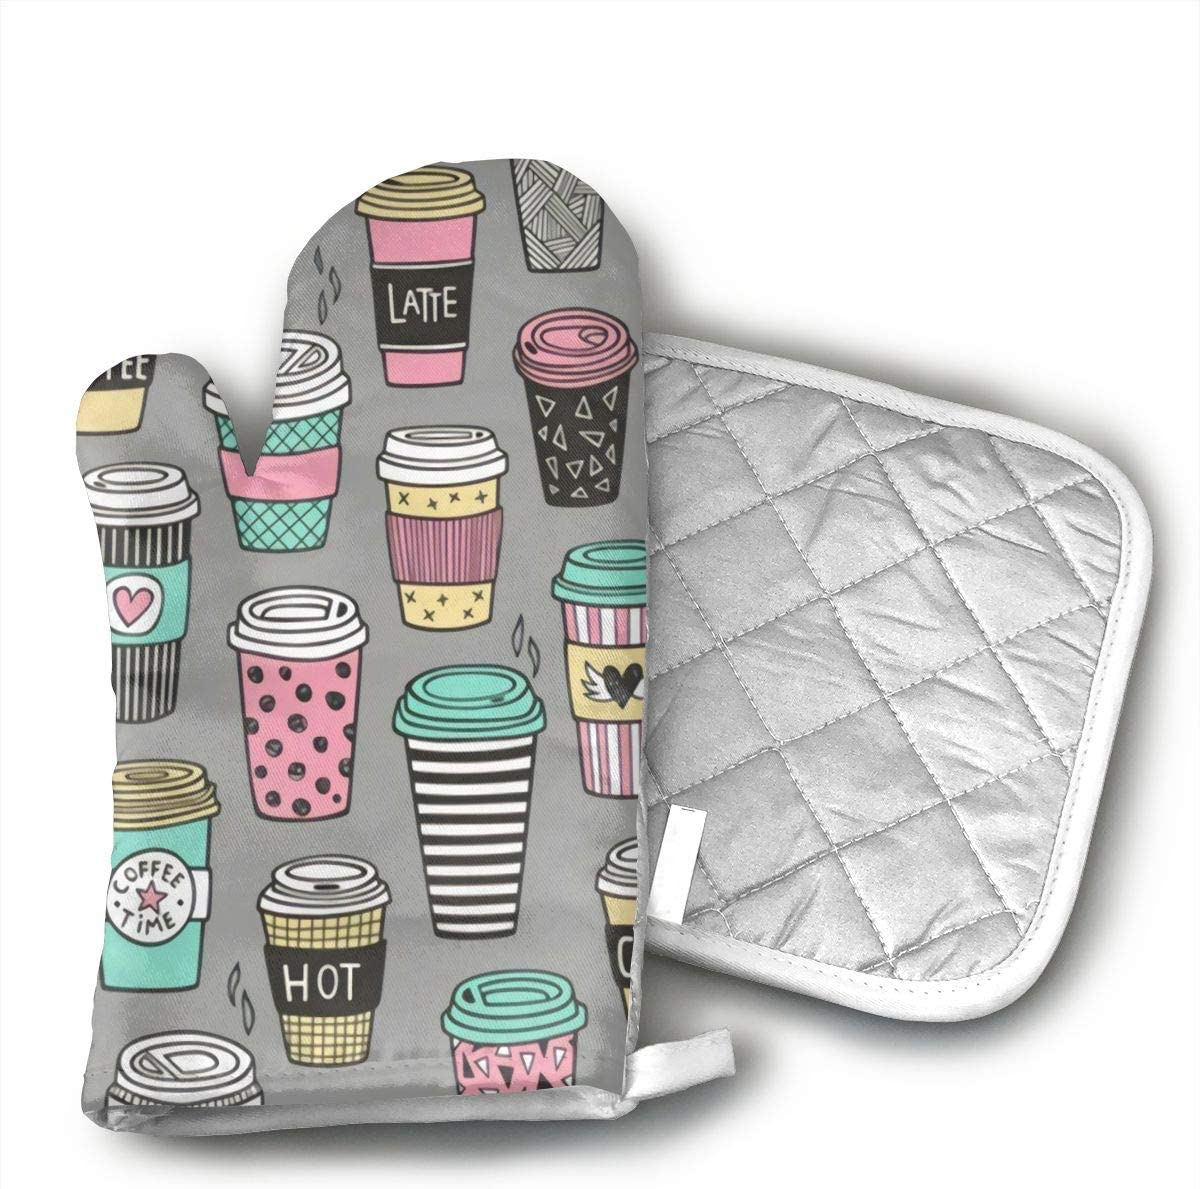 CHFSTi Oven Mitts Coffee Latte Geometric Patterned Non-Slip Silicone Oven Mitts& Pot Holders, Heat Resistant to 500Fahrenheit Degrees Kitchen Oven Gloves